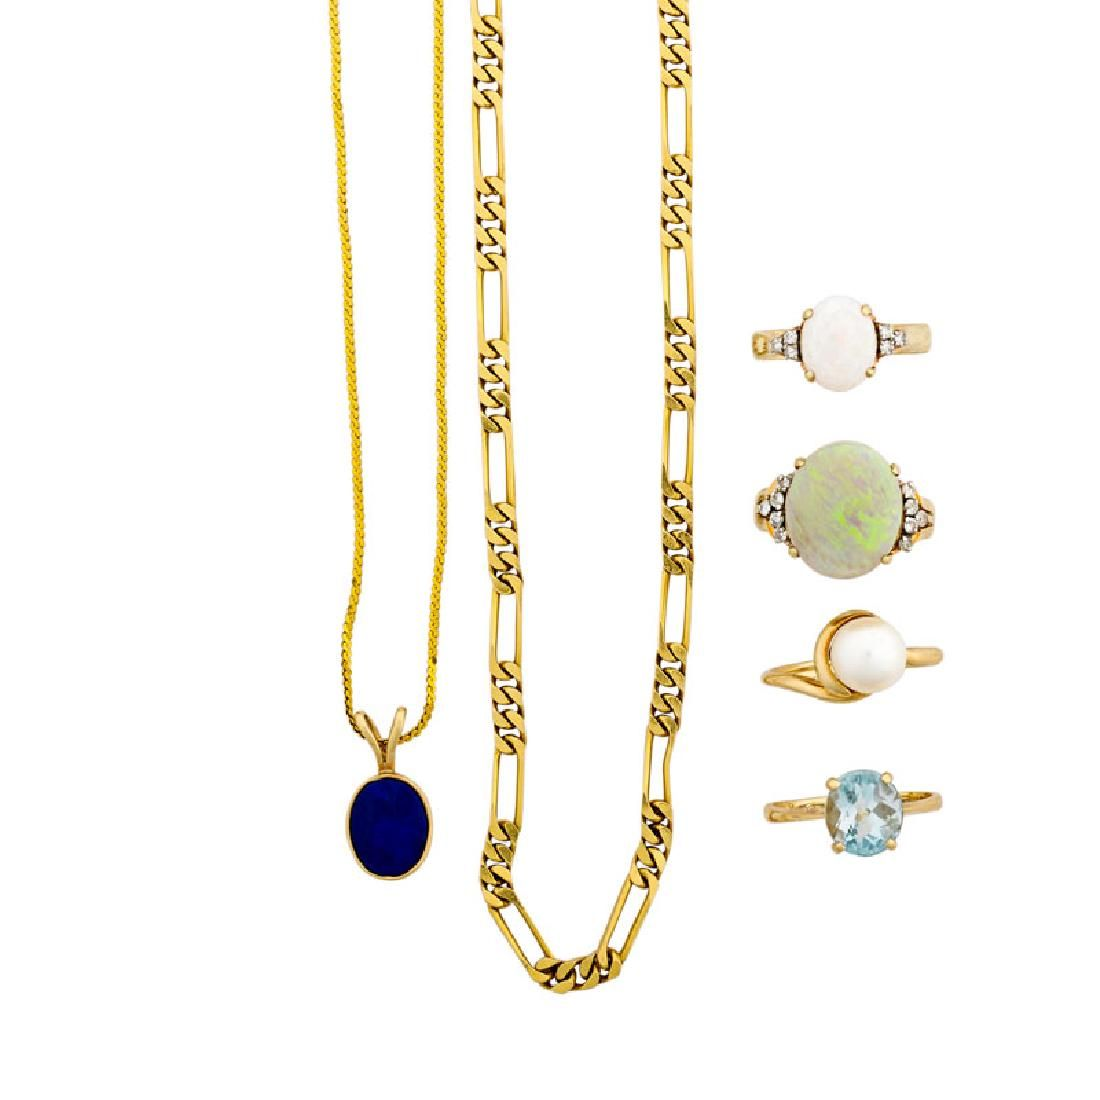 COLLECTION OF GEM SET YELLOW GOLD JEWELRY